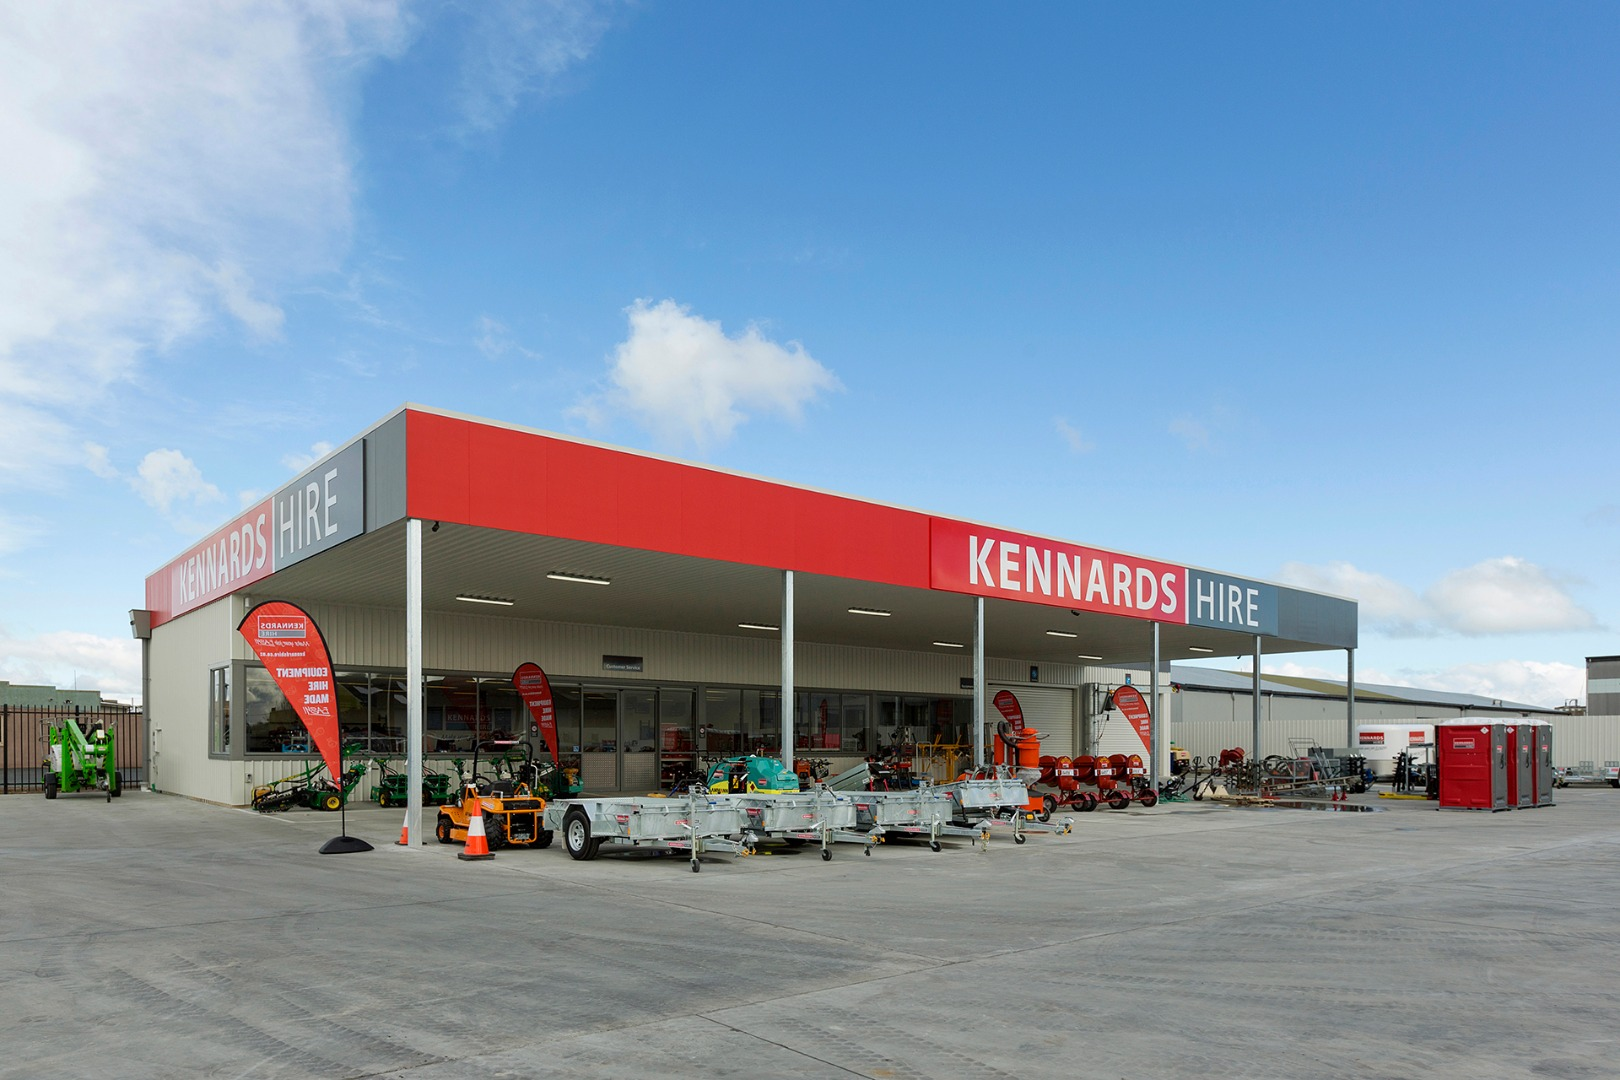 Kennards Hire front view 02_LOWRES.jpg